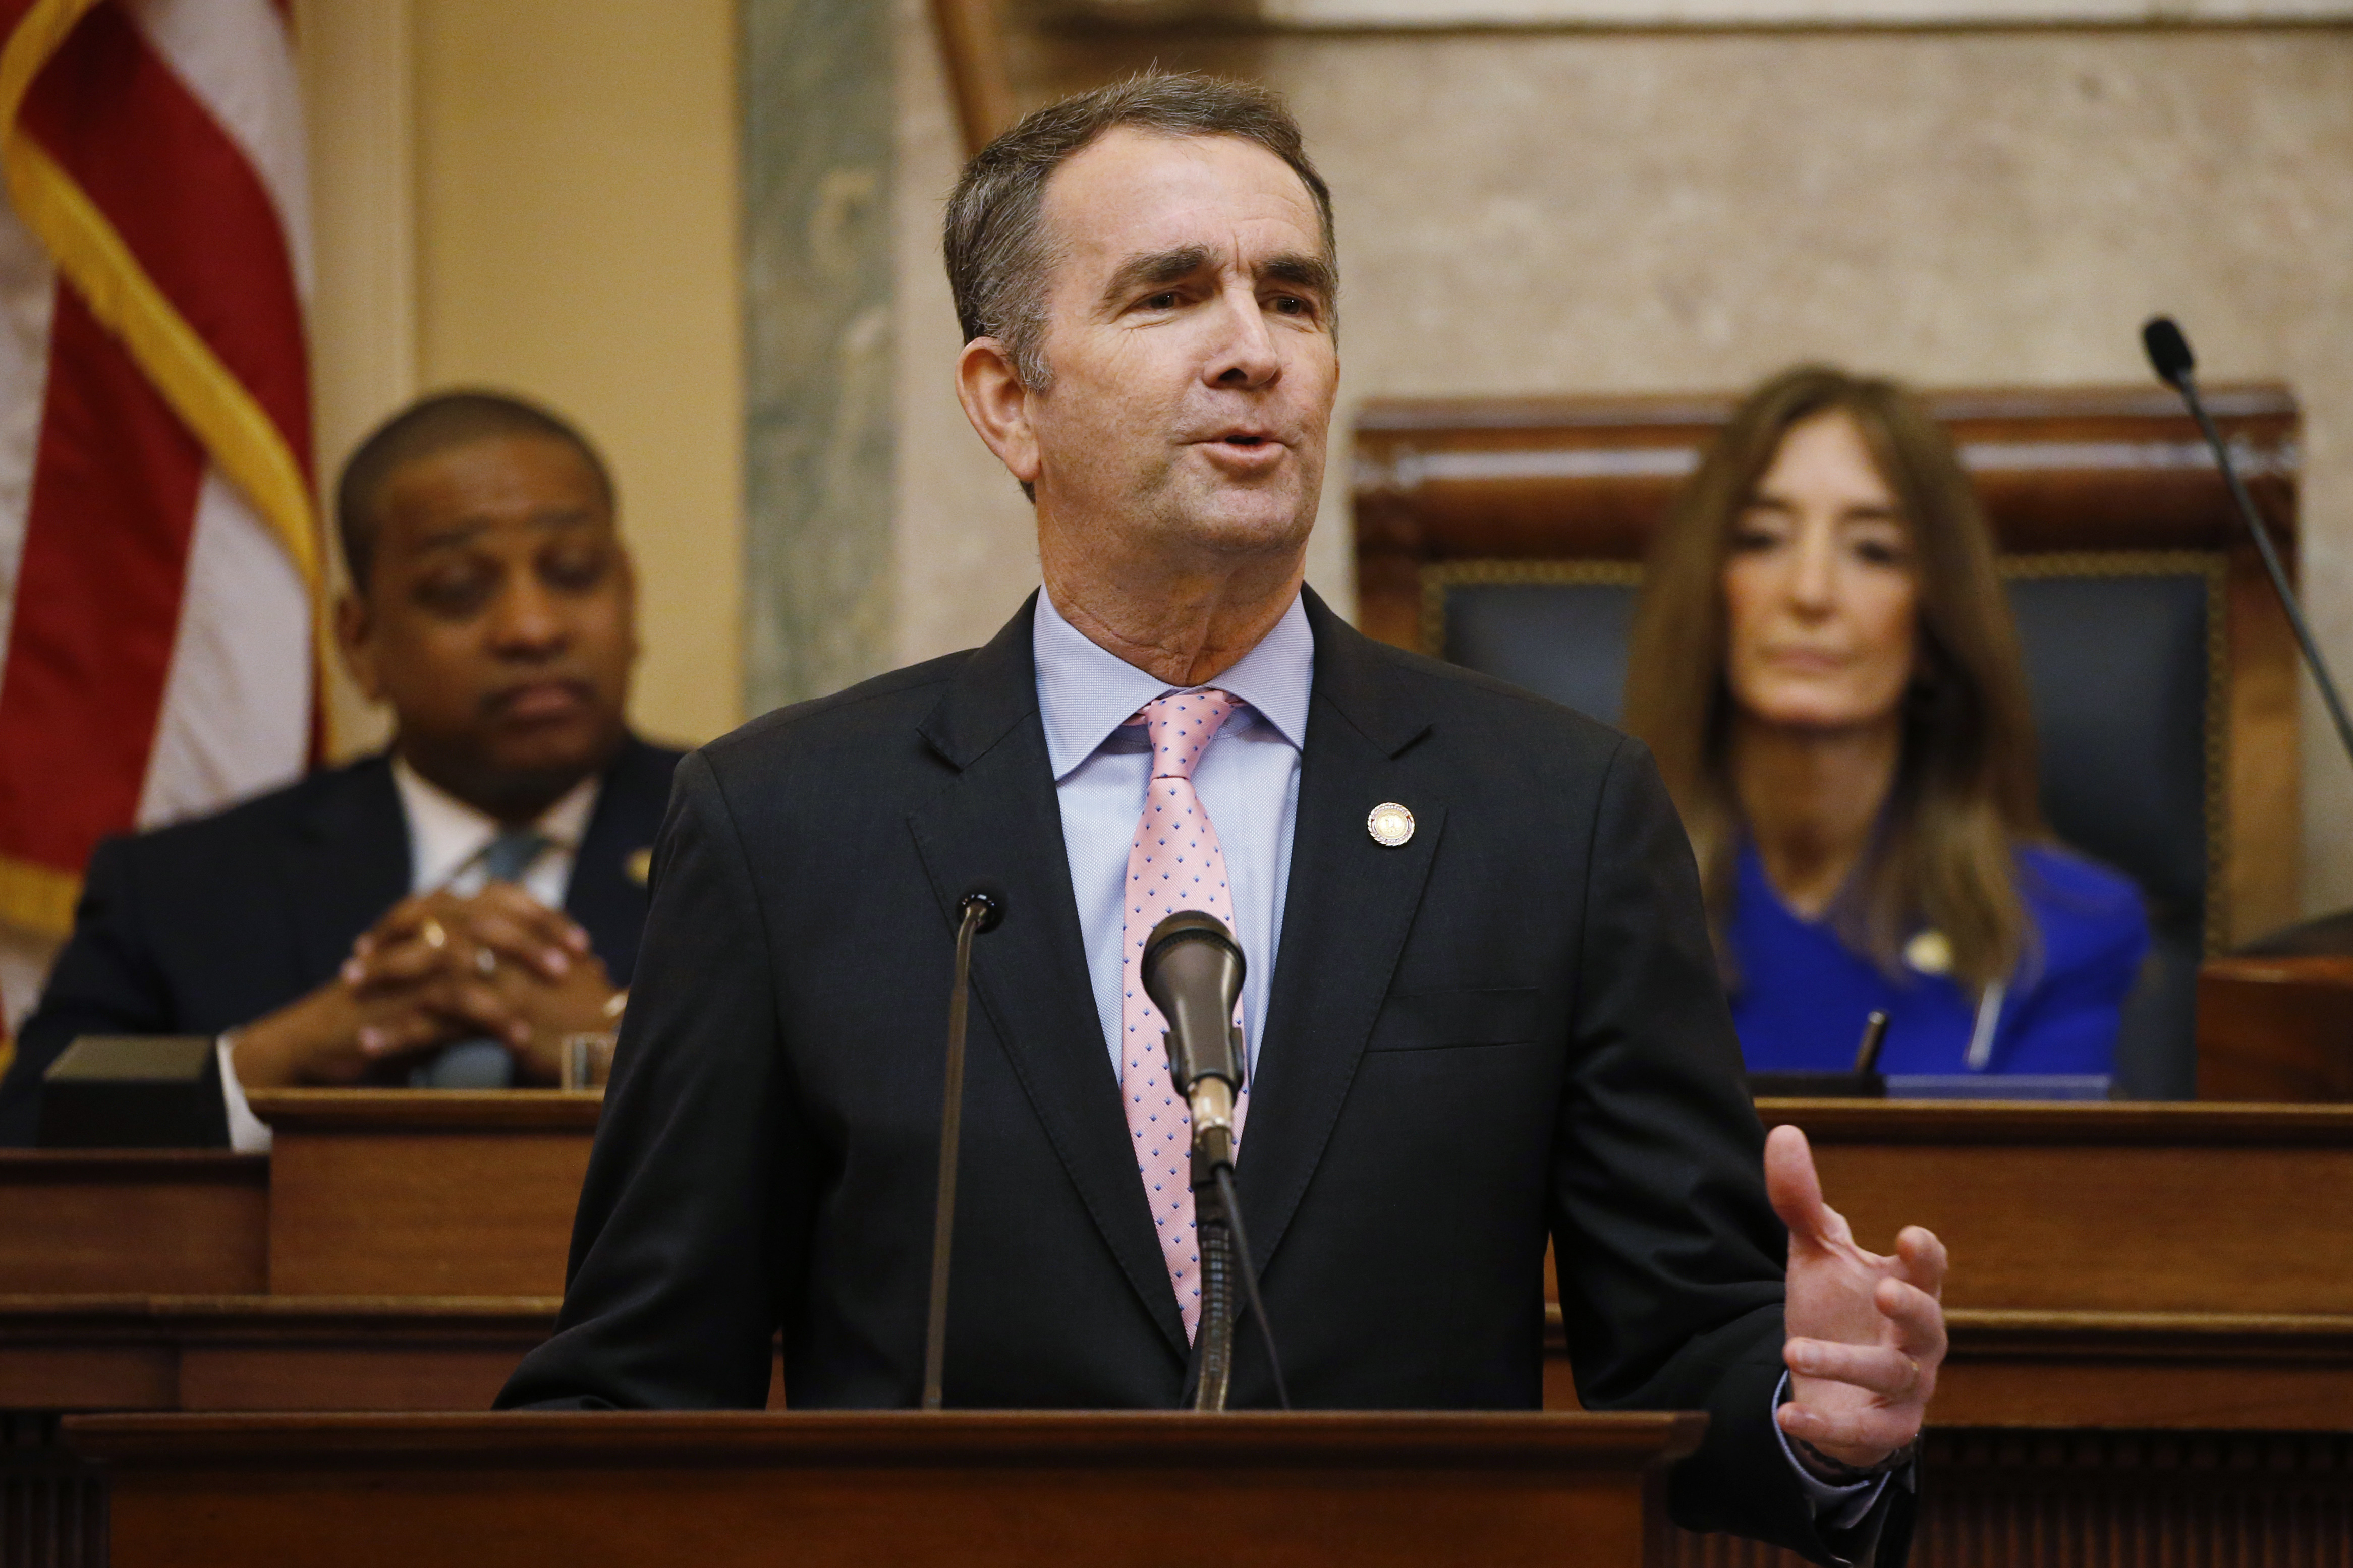 Northam declares state of emergency ahead of gun rally